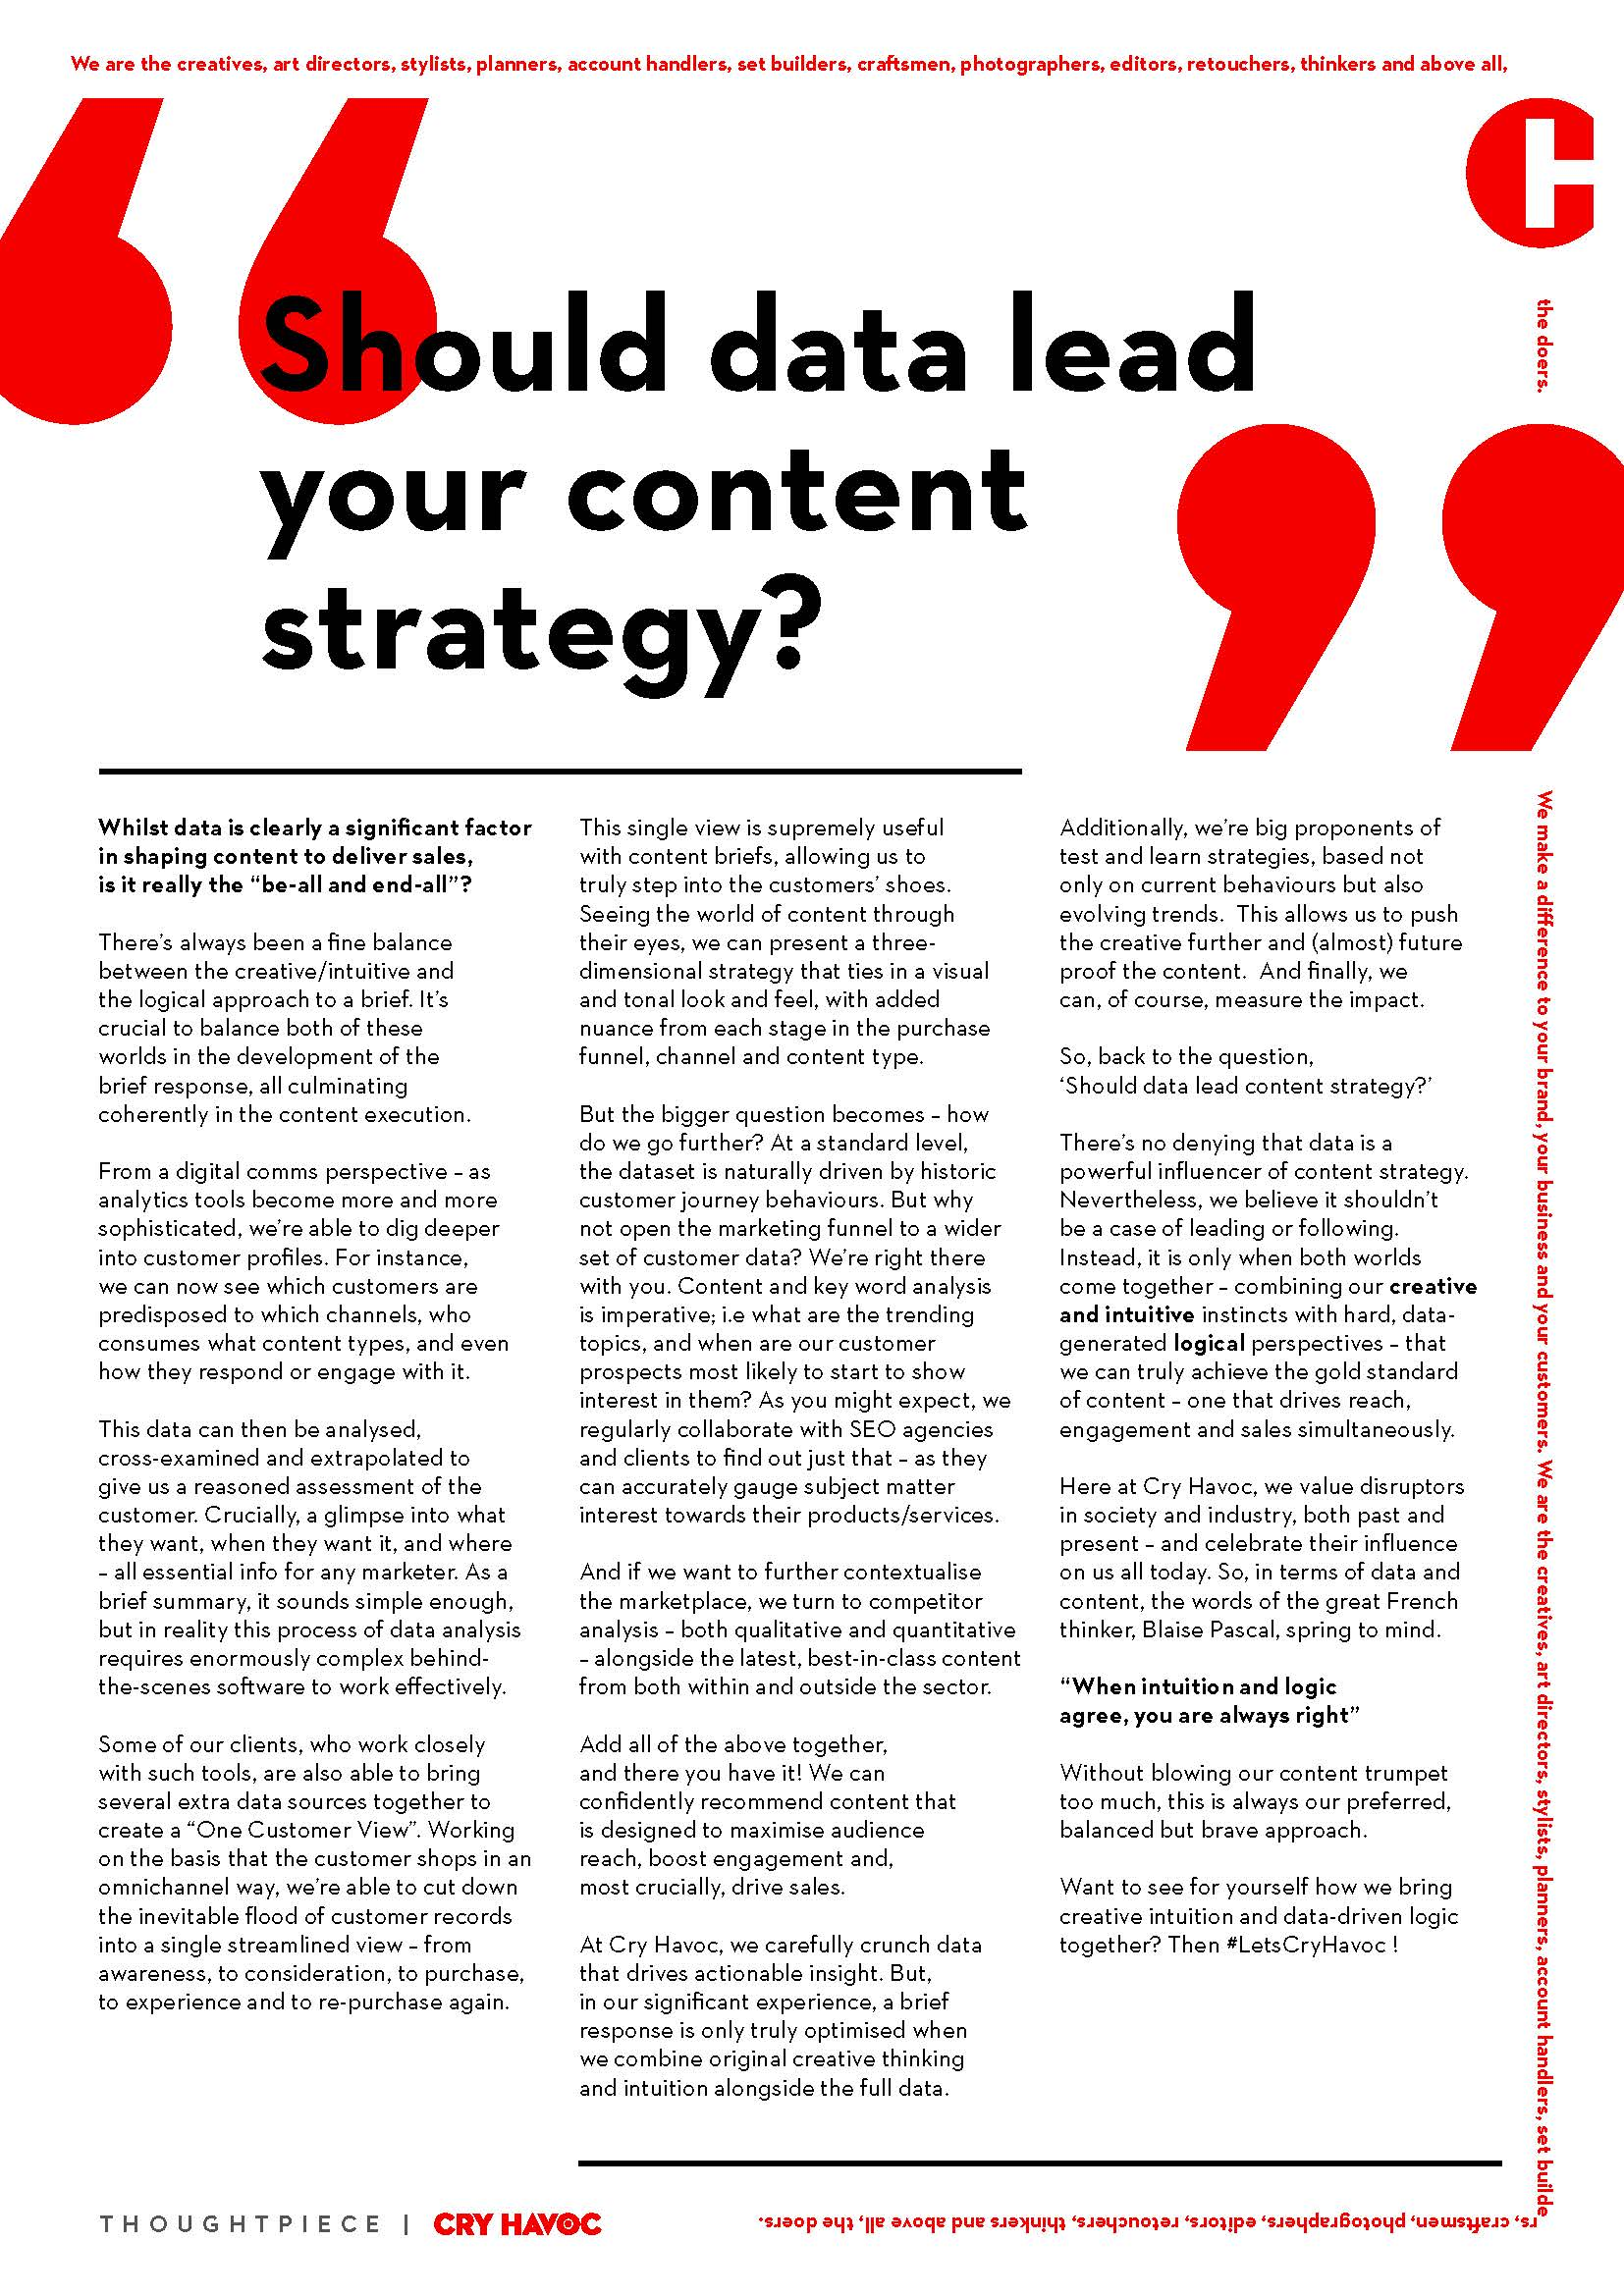 Should data lead your content strategy?.jpg